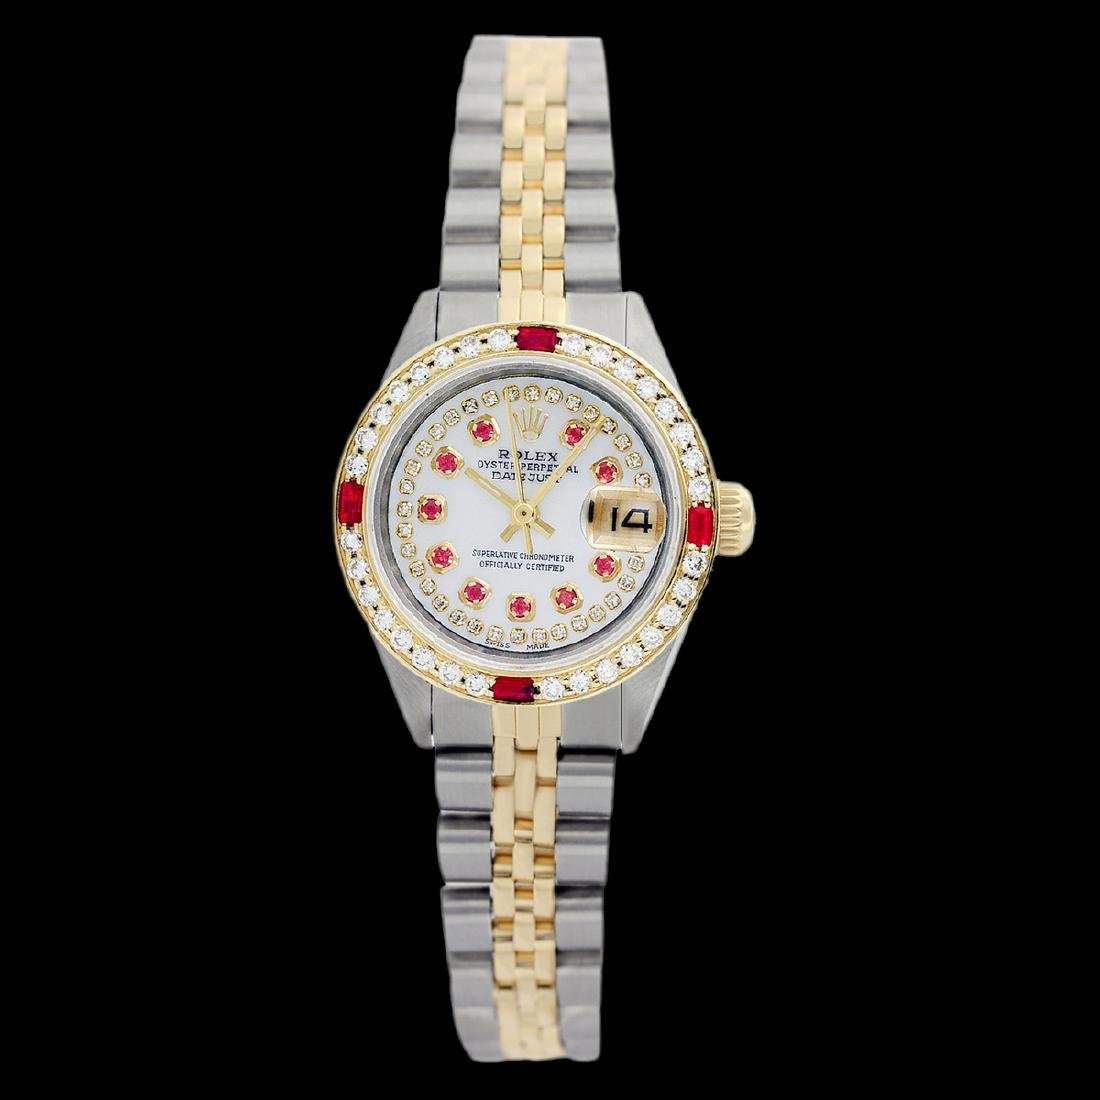 Rolex Men's Two Tone 14K Gold/SS, QuickSet, Diam/Ruby - 2